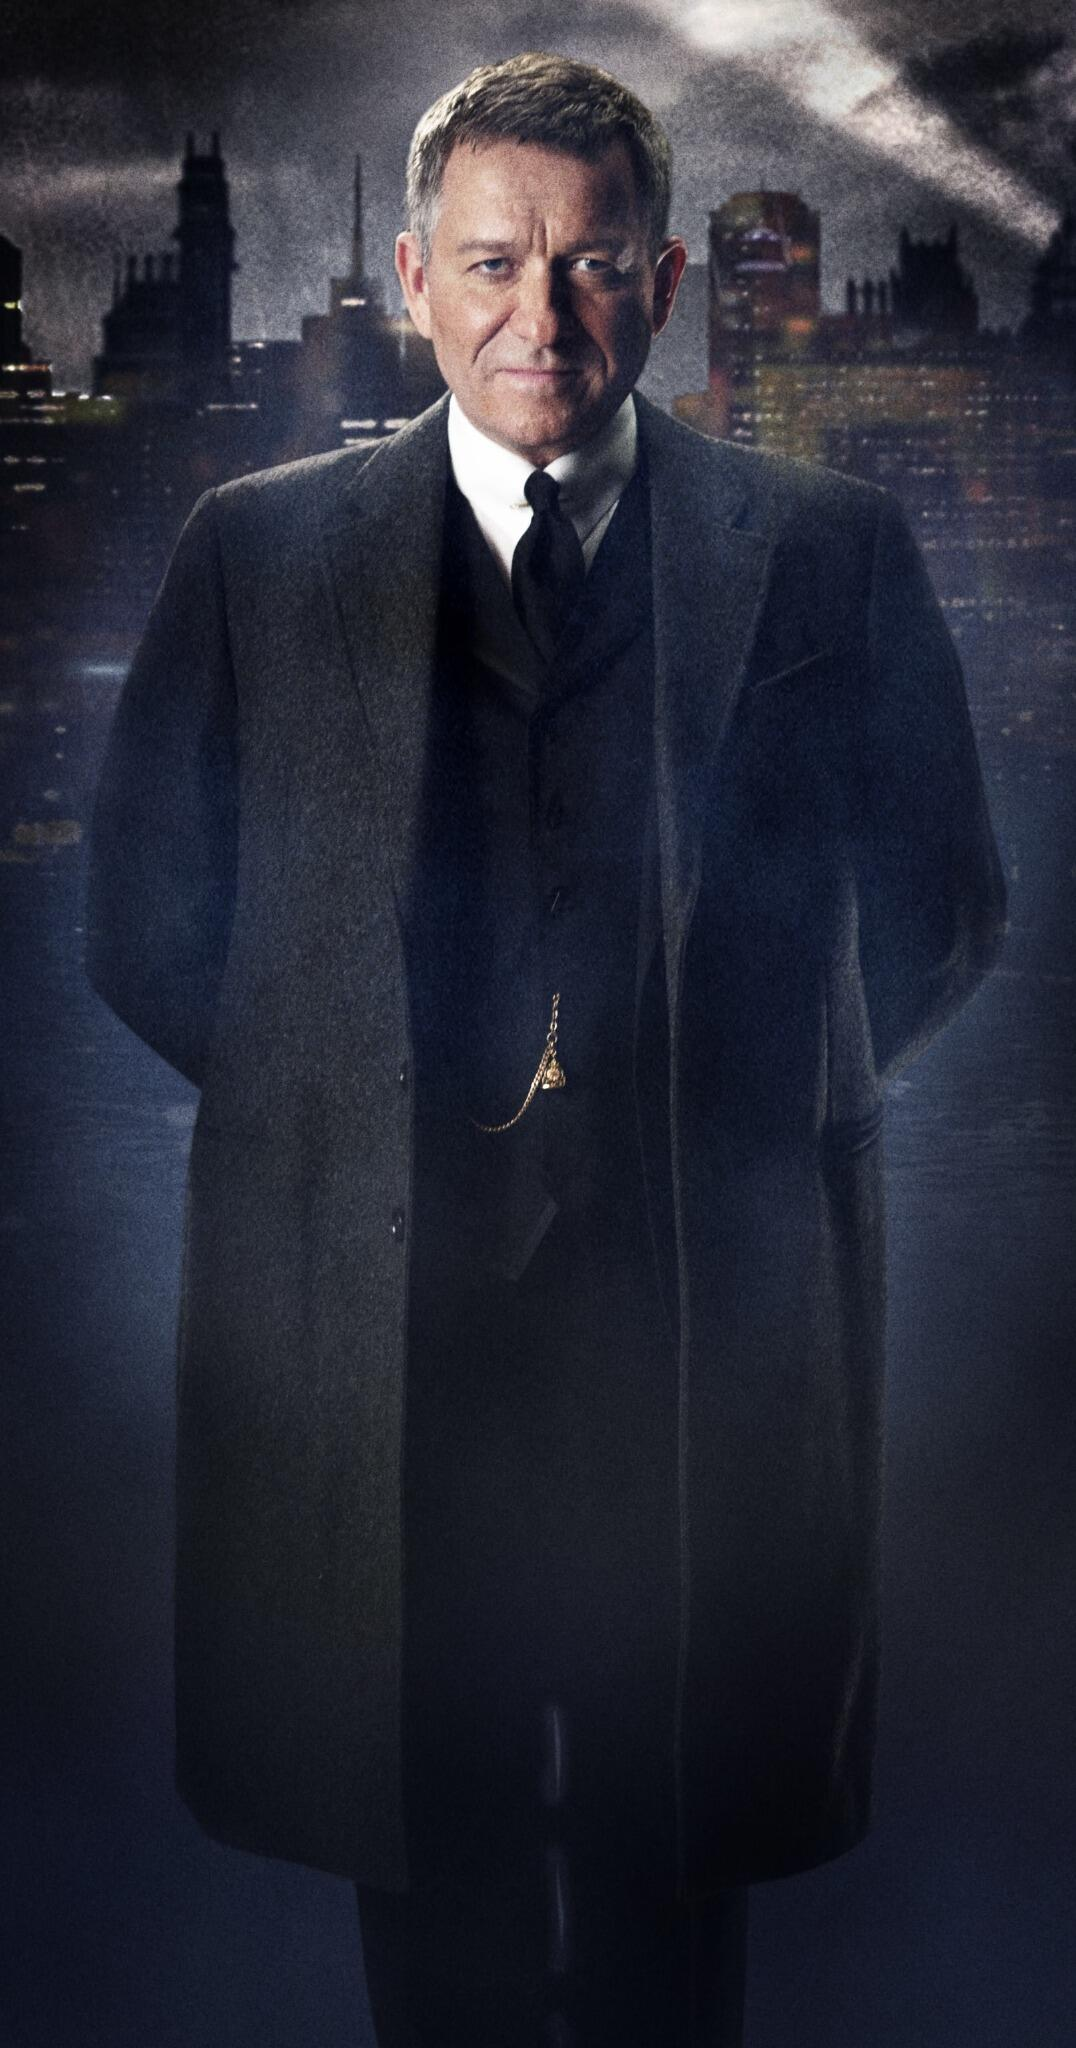 Tv Show Gotham reveals two more characters Alfred Pennyworth and Oswald Cobblepot The Penguin Bjg5FjlCUAAnhT8